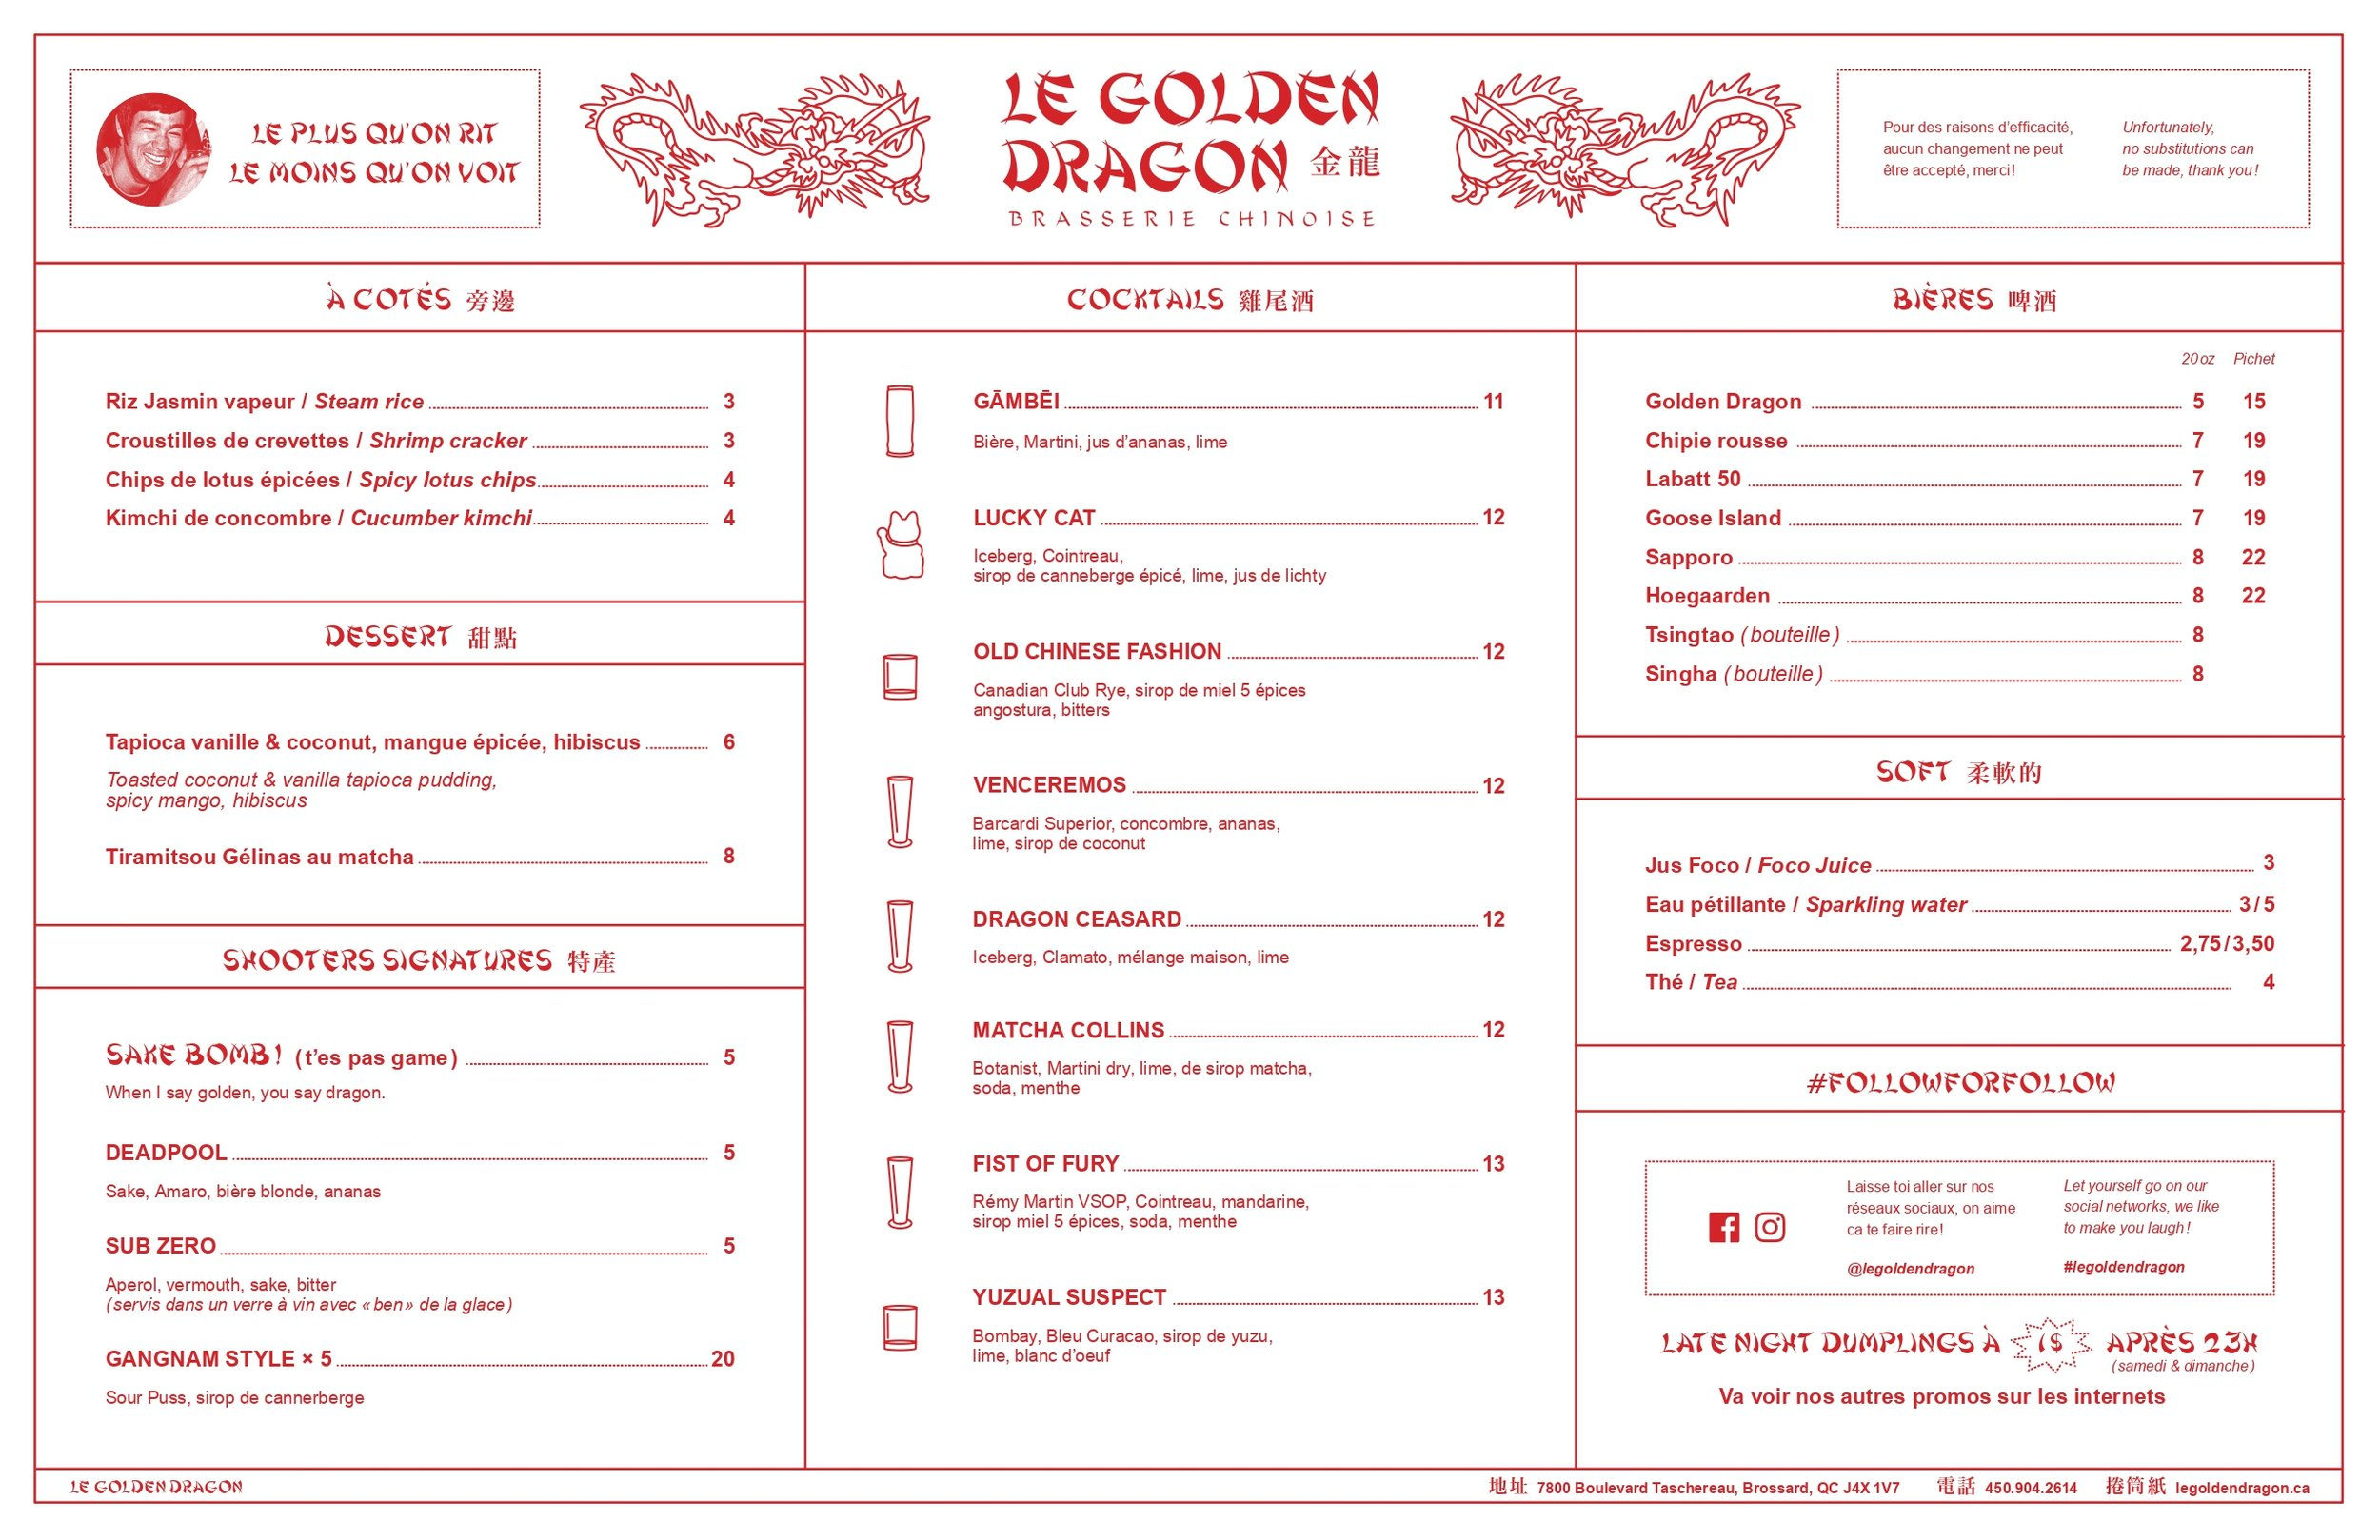 legoldendragon_menu_15avril_VF_page-0002.jpg